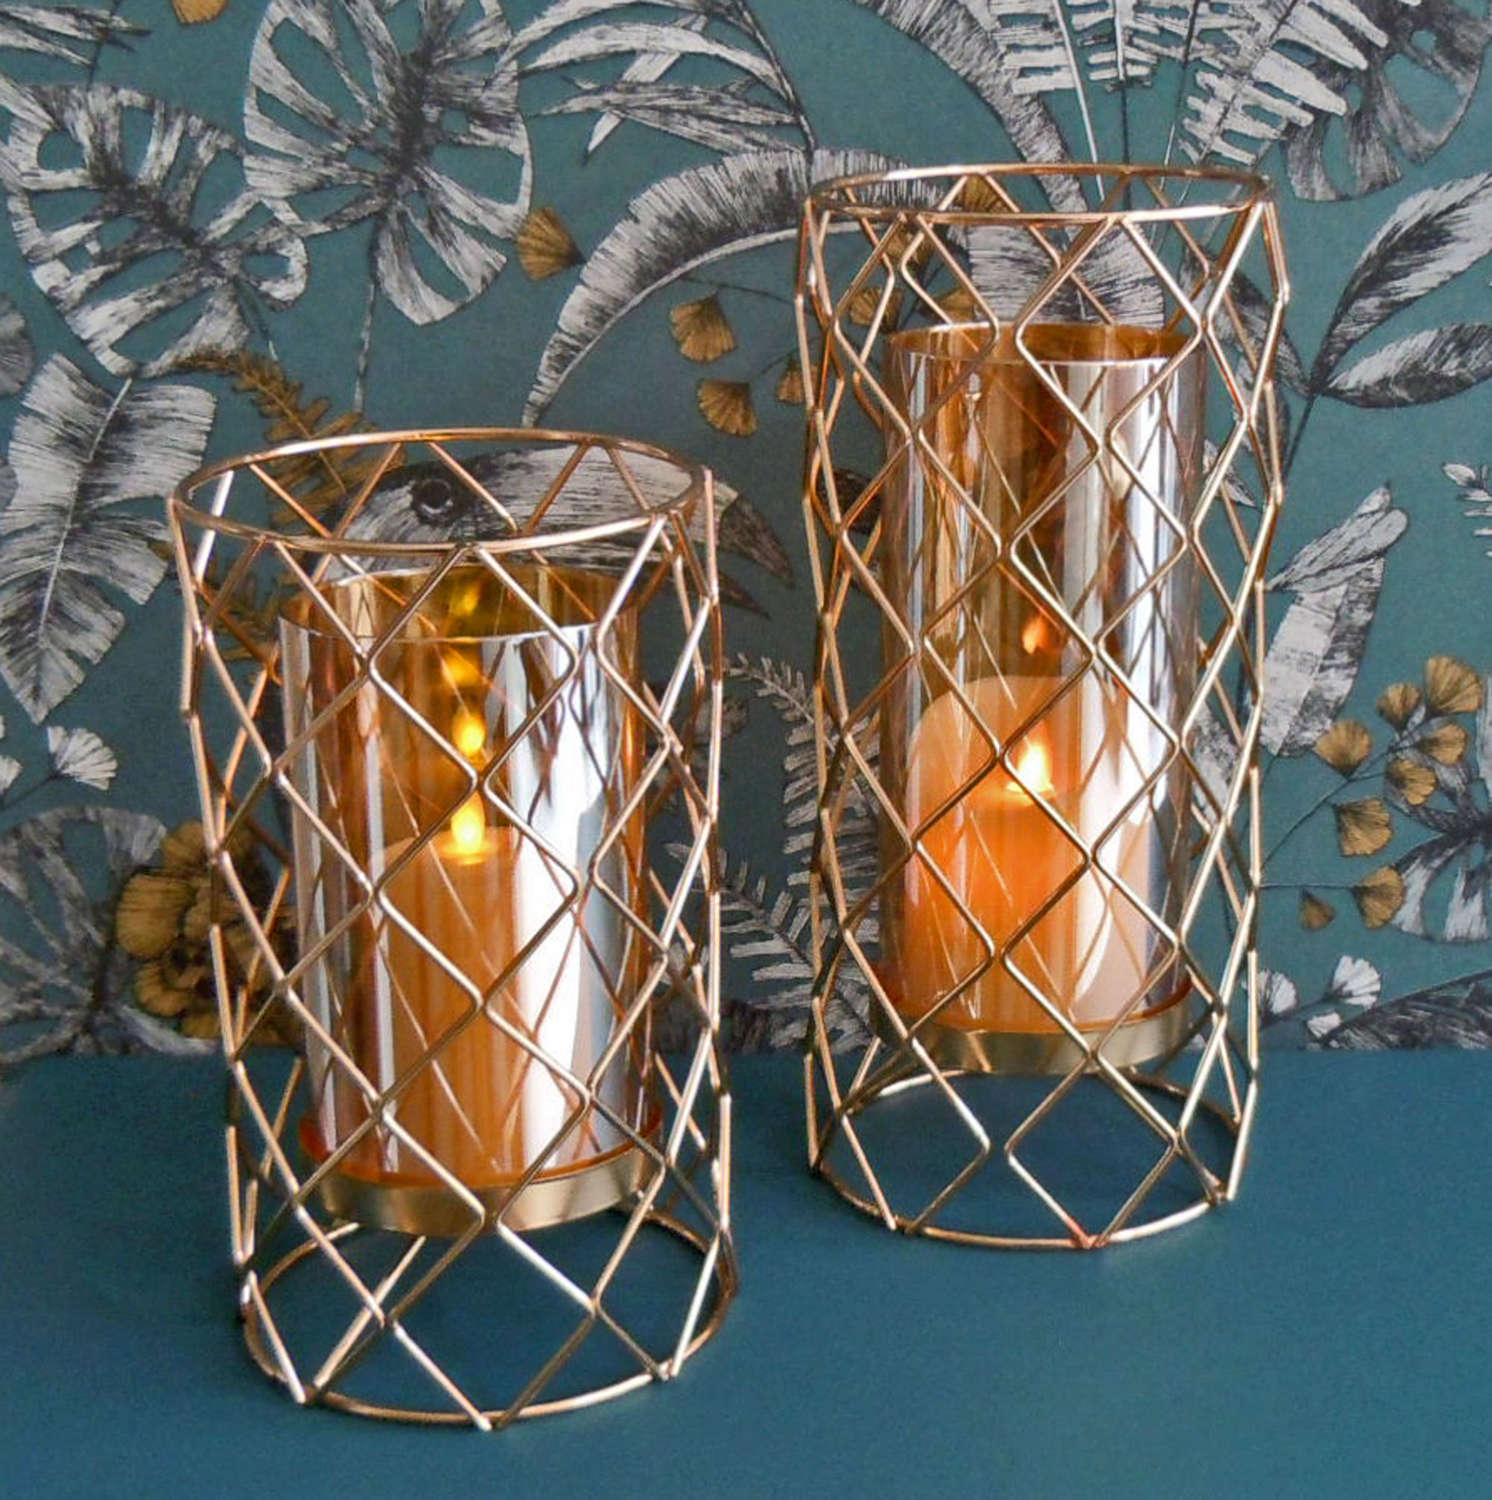 Plaid rose gold metal candle holders